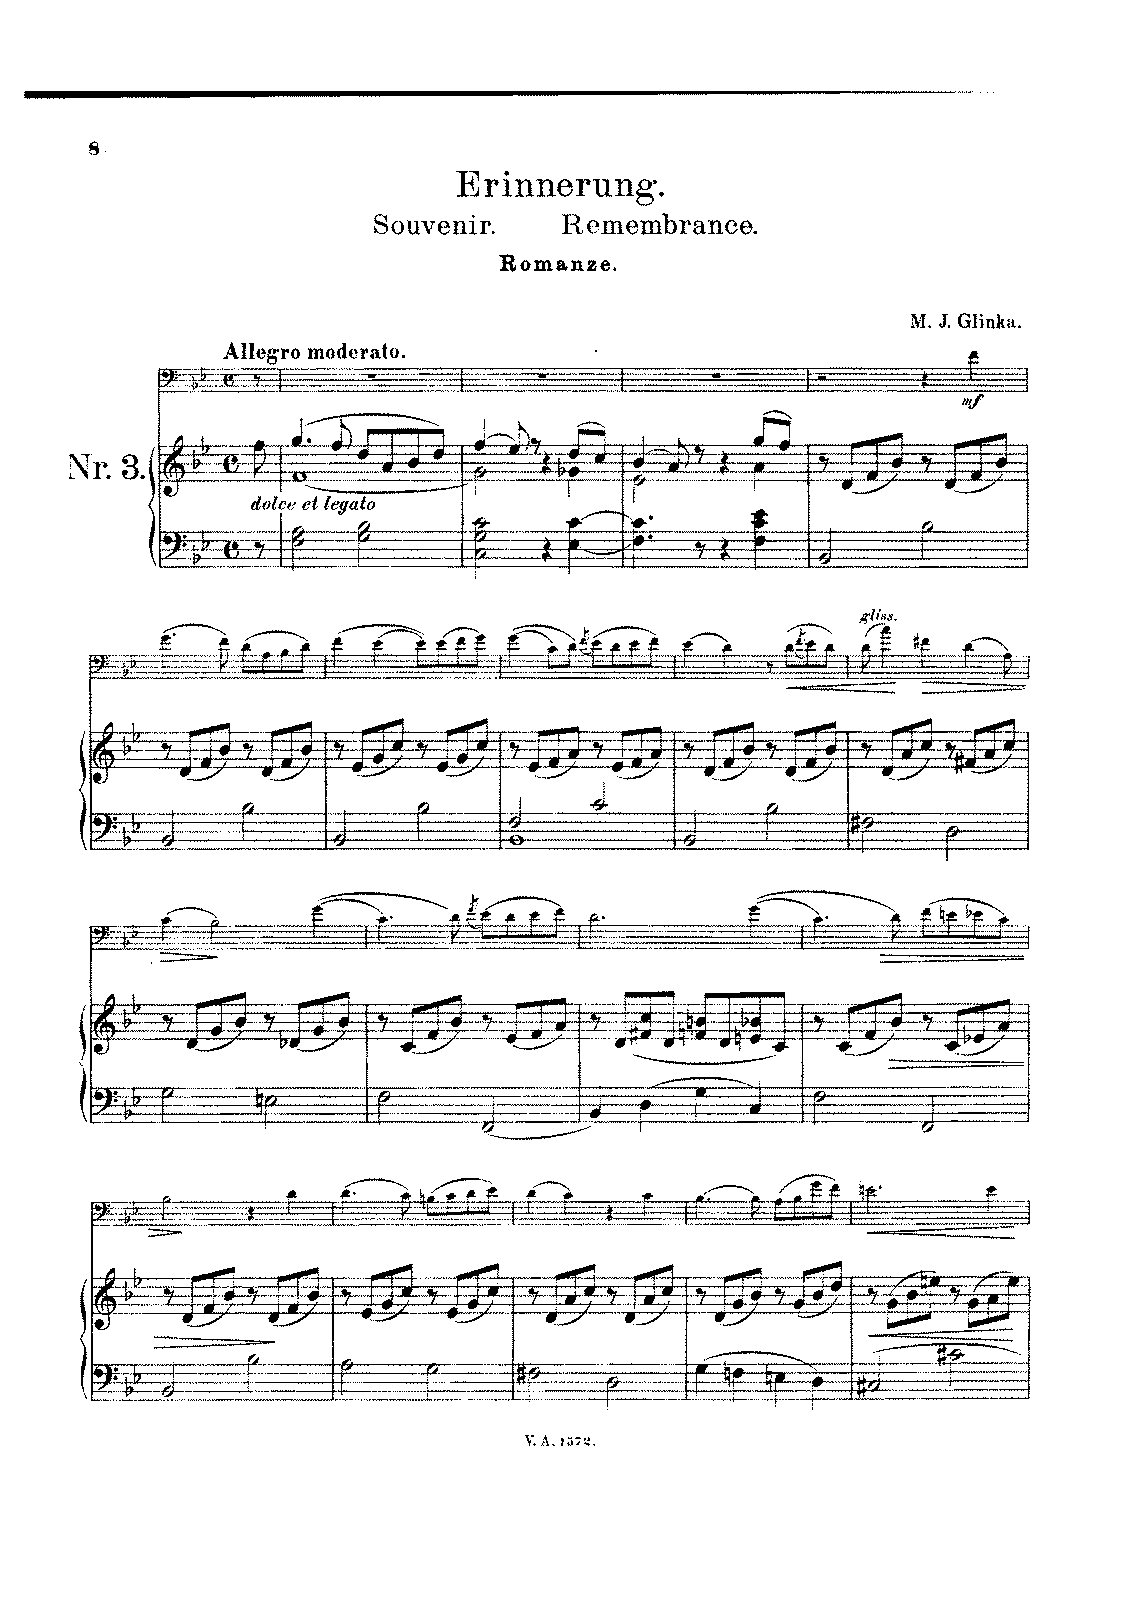 PMLP26581-Glinka - Remembrance Romance (Salter) for Cello and Piano score.pdf